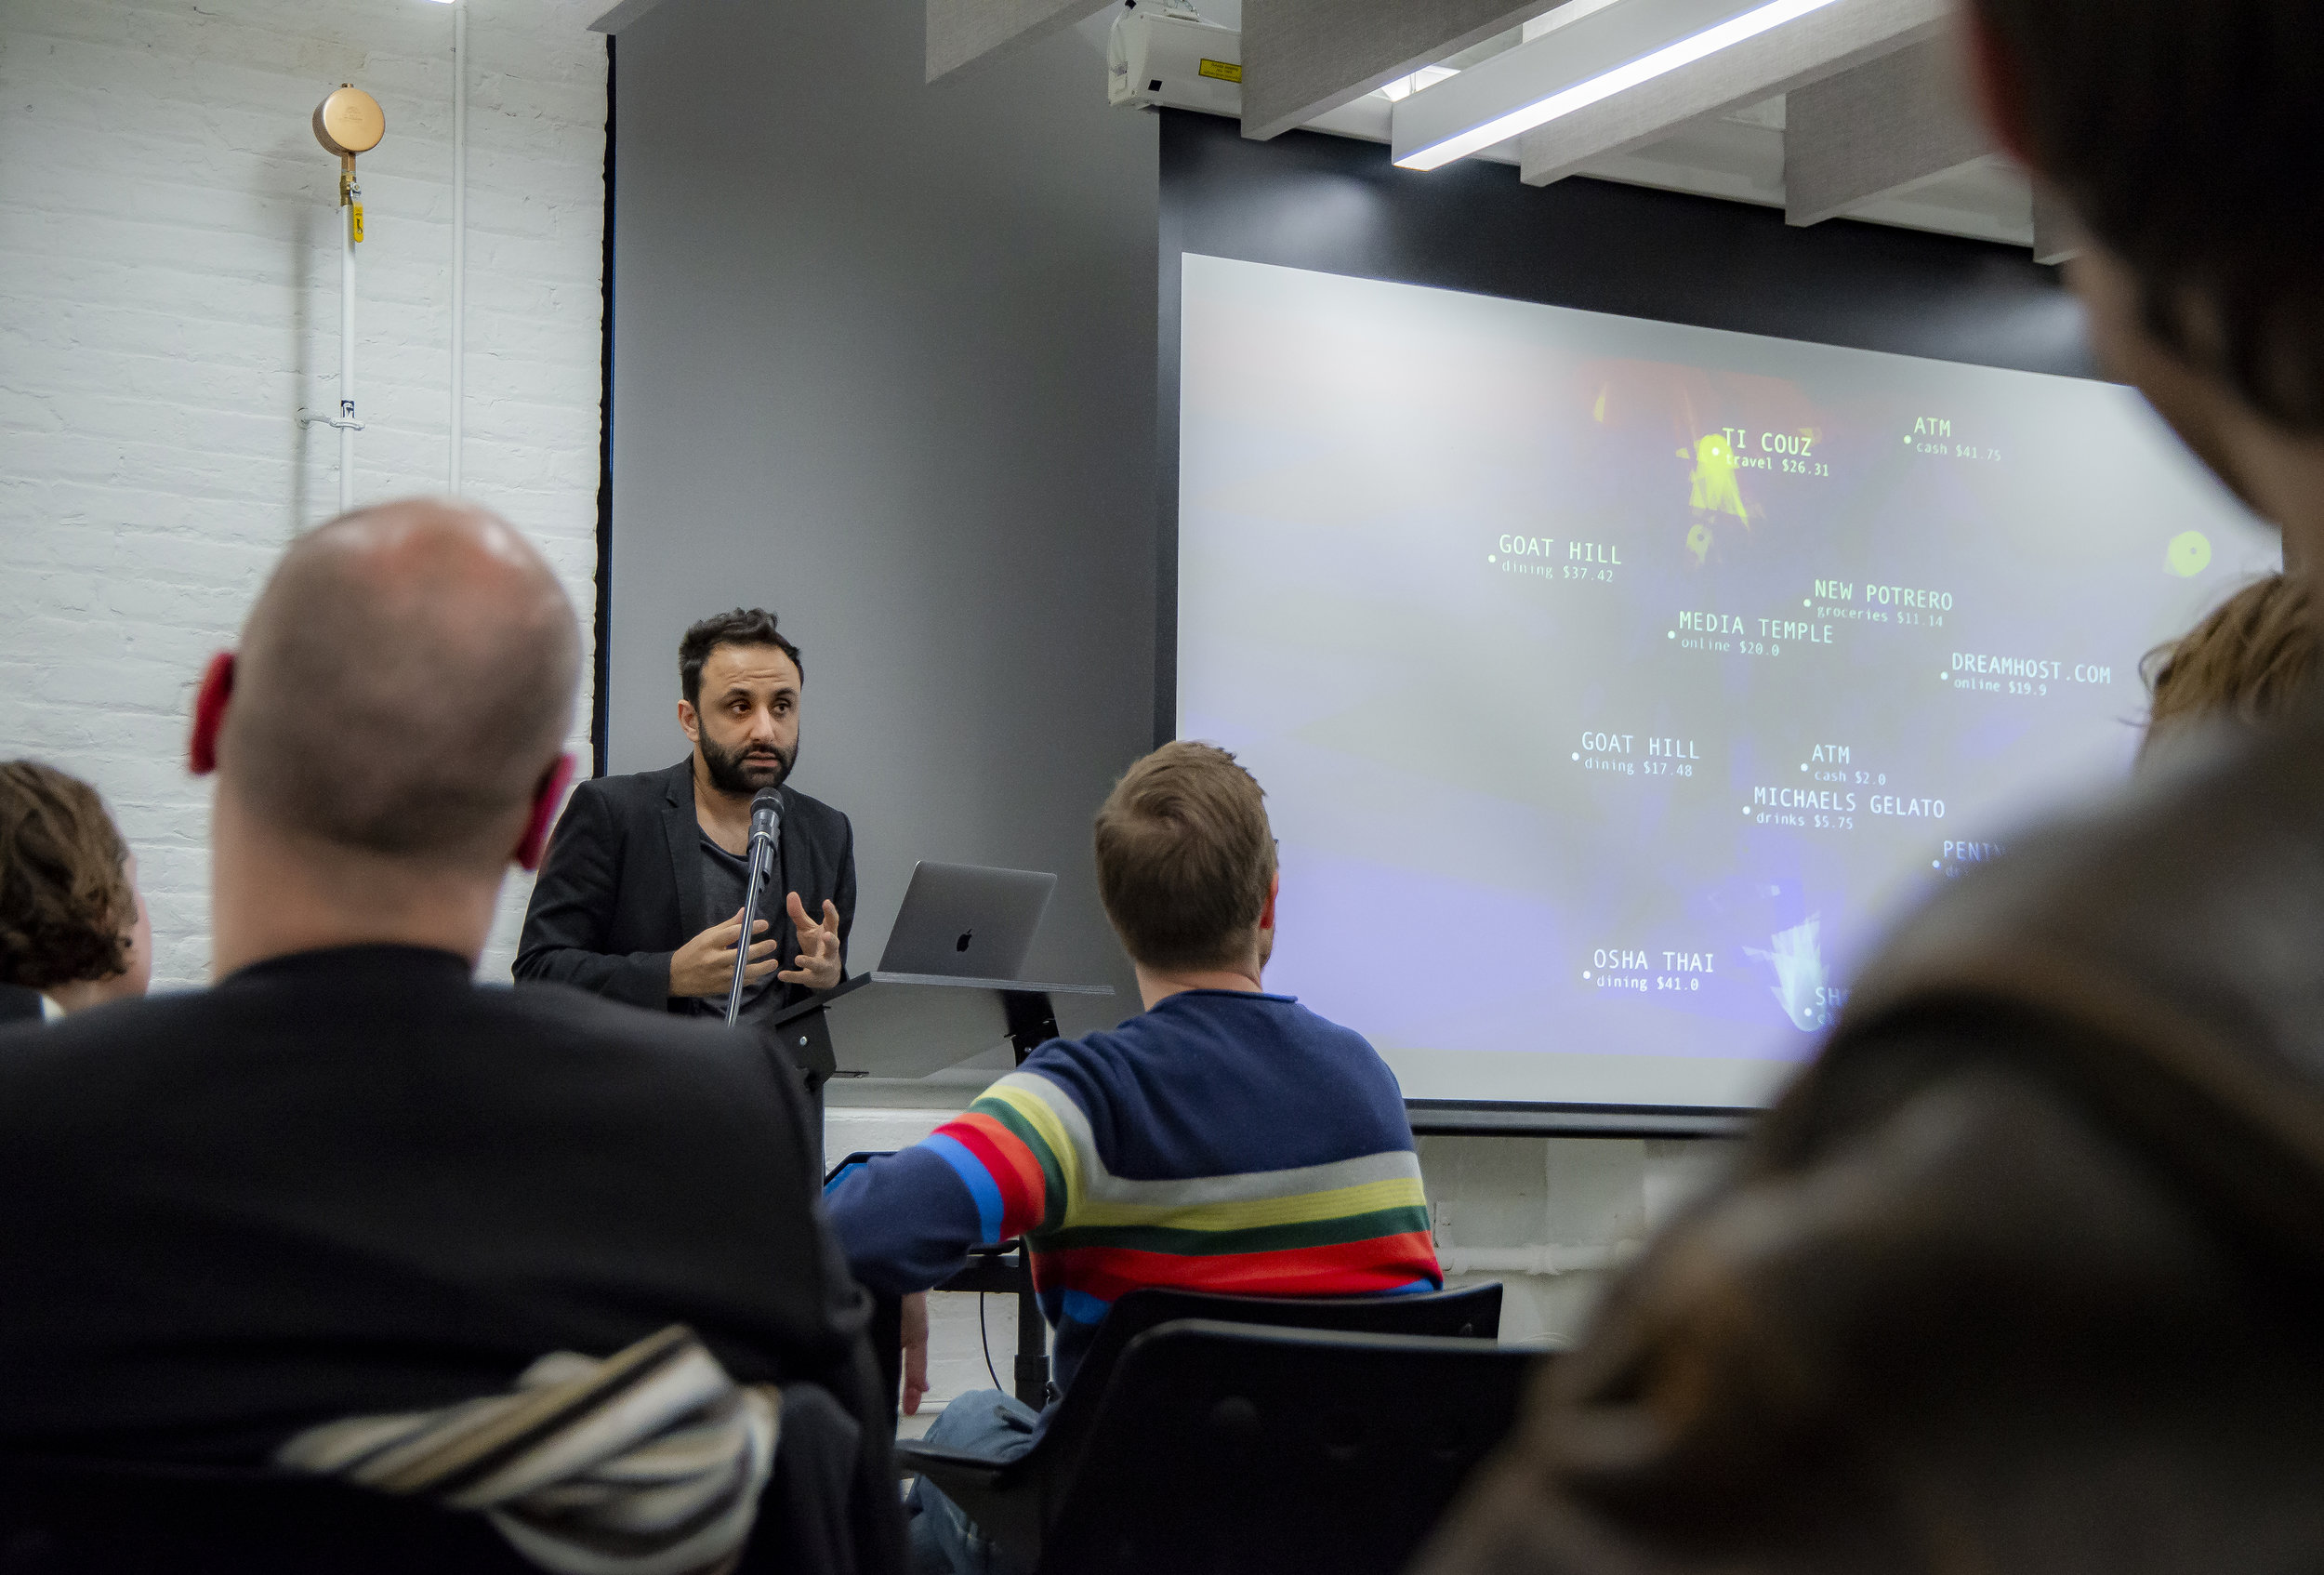 Artist Burak Arikan told about his work with complex networks. Photo: Aidan Smith.